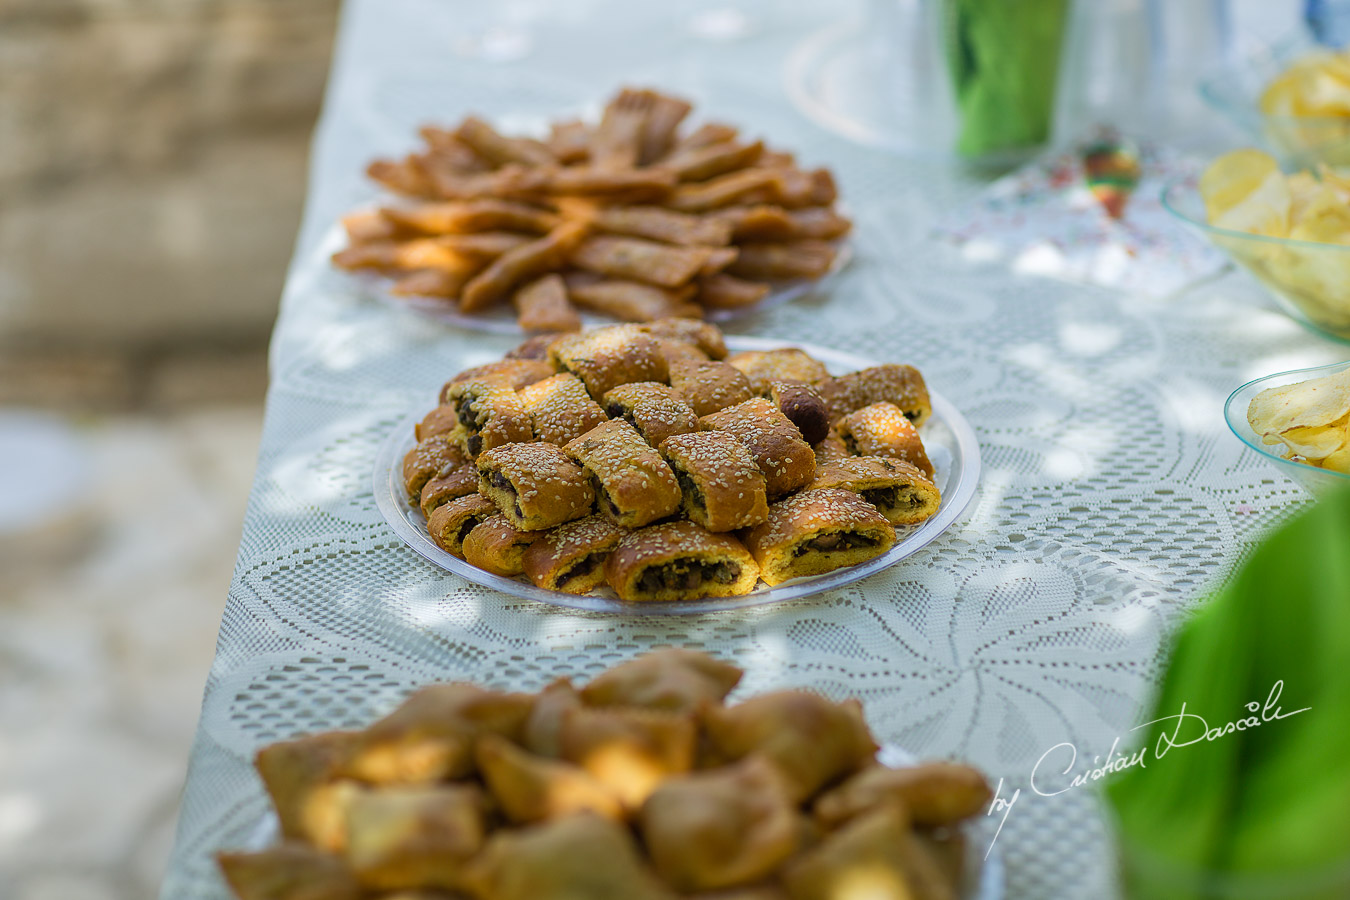 Traditional food captured at Traditional Cyprus Wedding in Tochni, Larnaca.